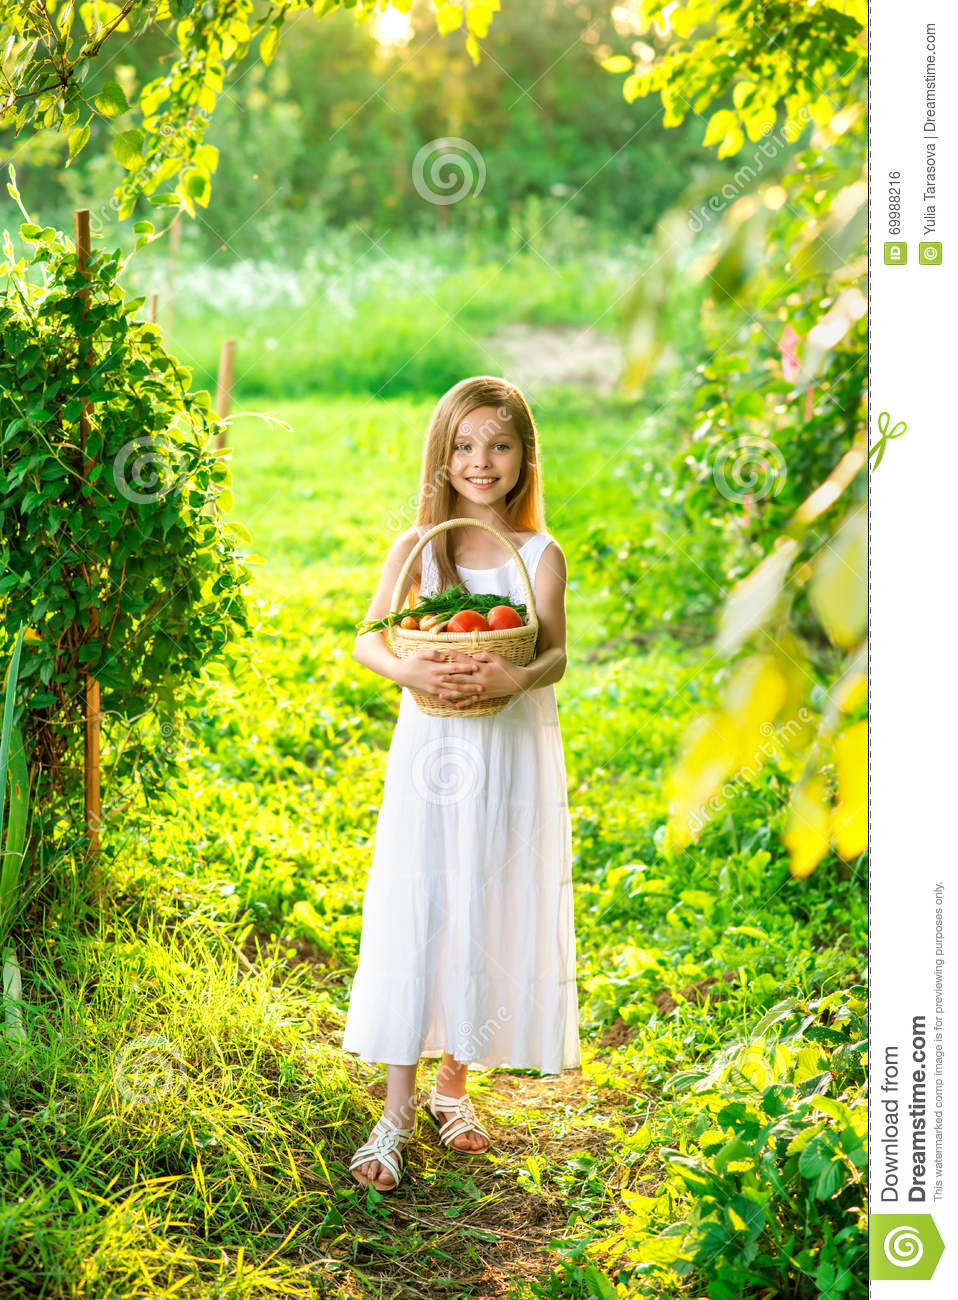 Cute smiling little girl holds basket with fruit and vegetables